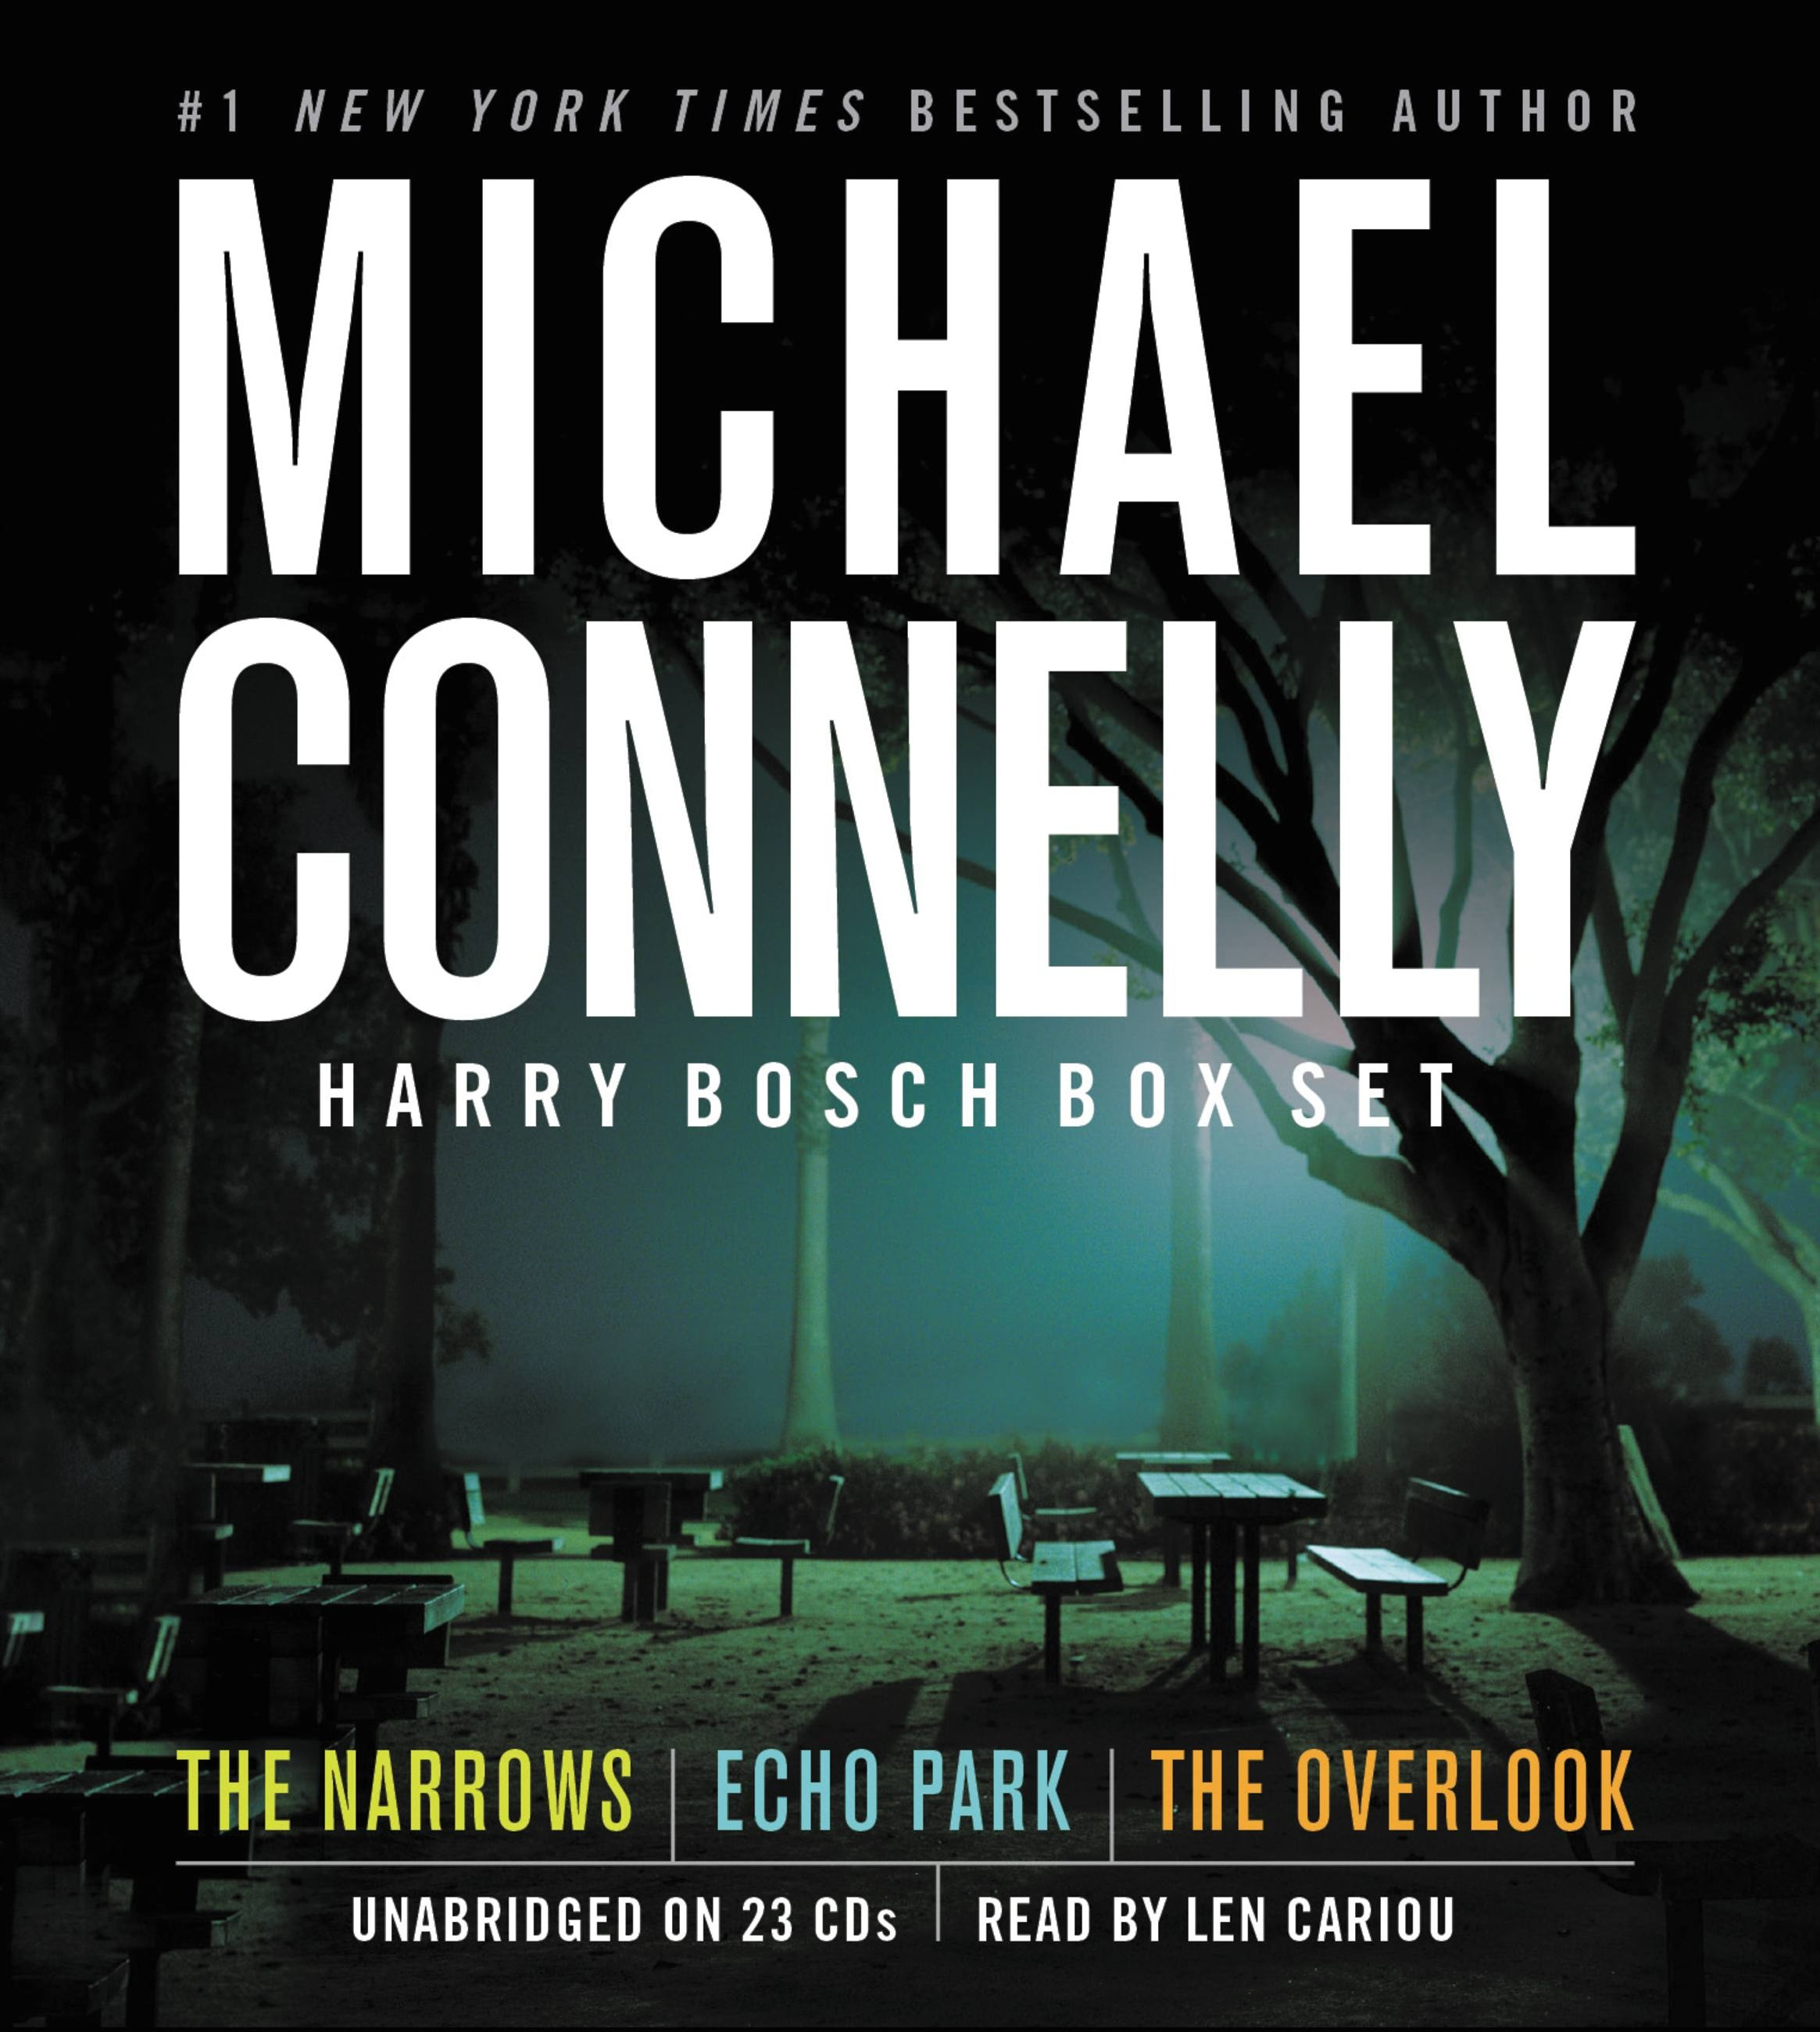 Harry Bosch Box Set